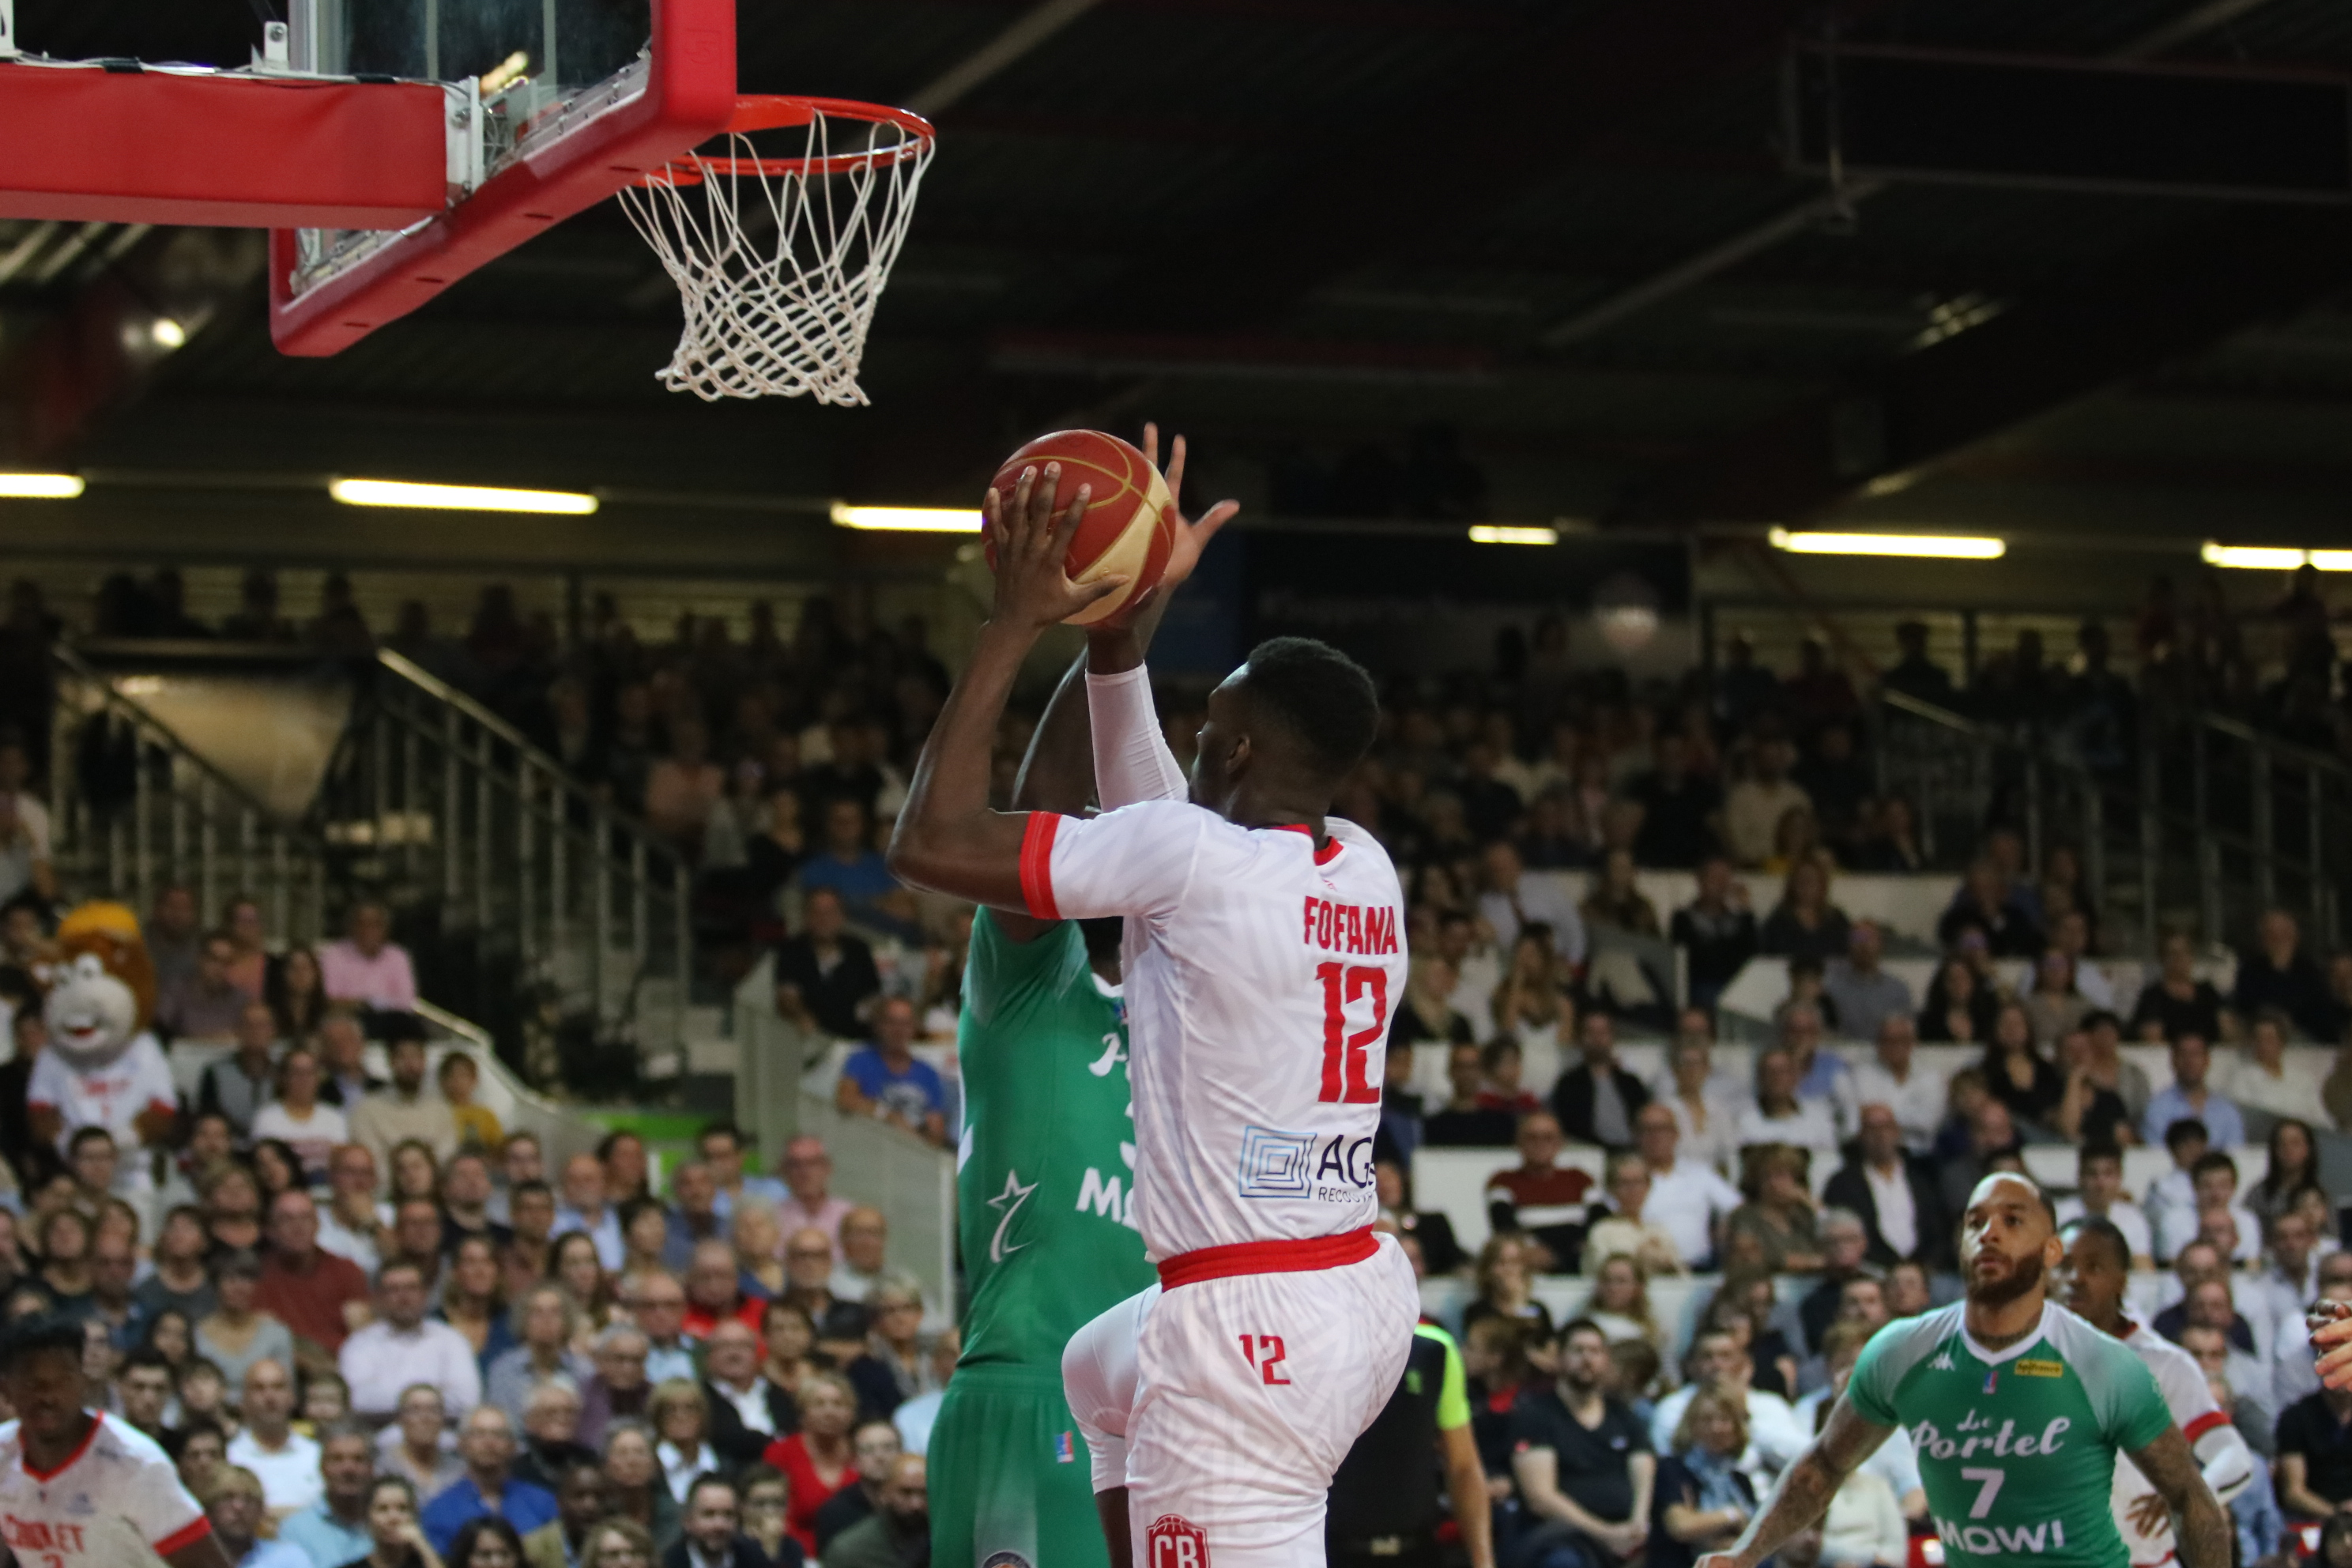 Jl Bourg Calendrier.Cholet Vs Jl Bourg Episode 2 La Revanche Cholet Basket